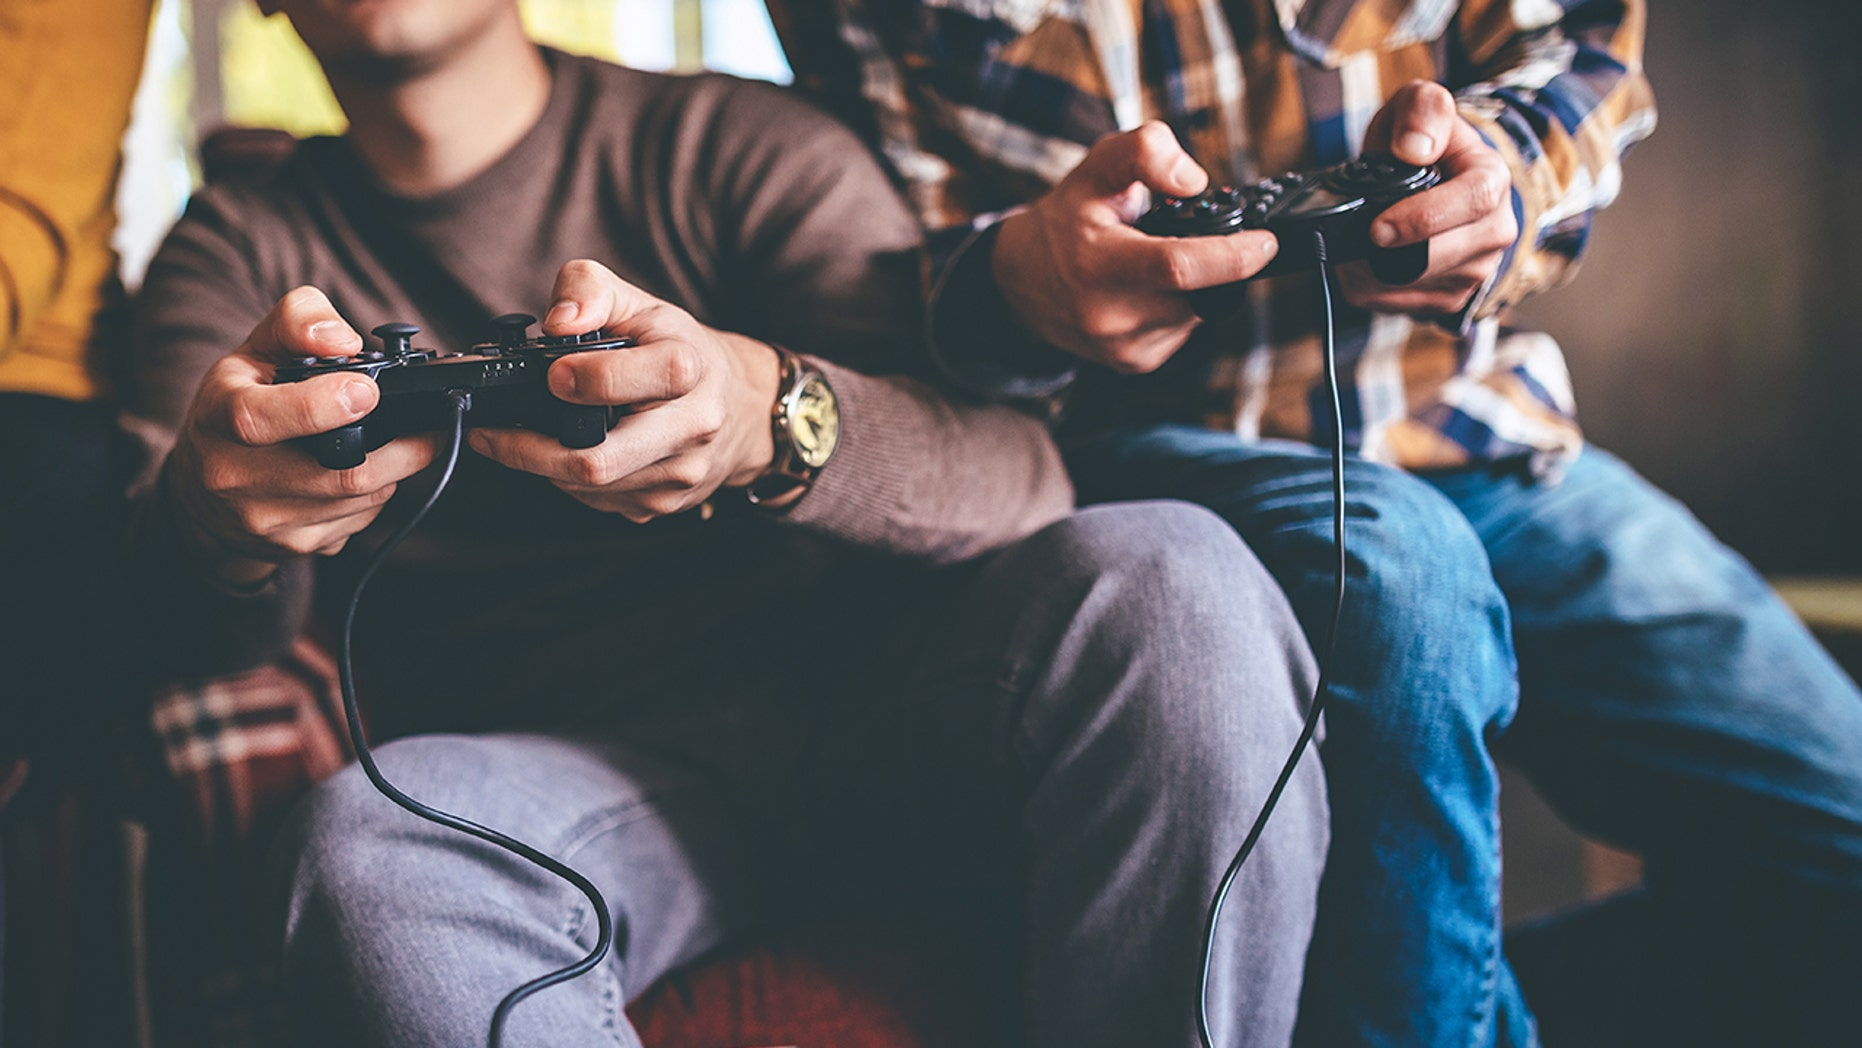 Cops responded to a noise complaint and played video games with the people they checked in with.